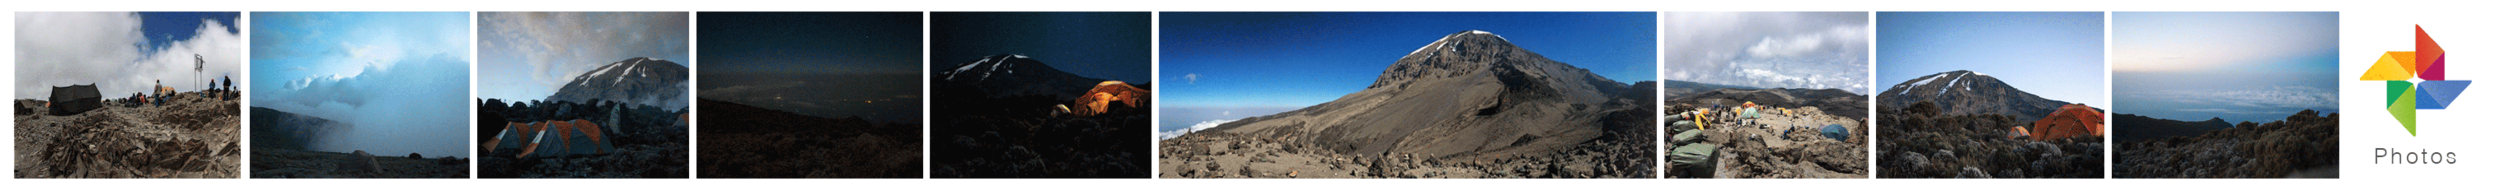 kilimanjaro-gallery-promo-wide.png